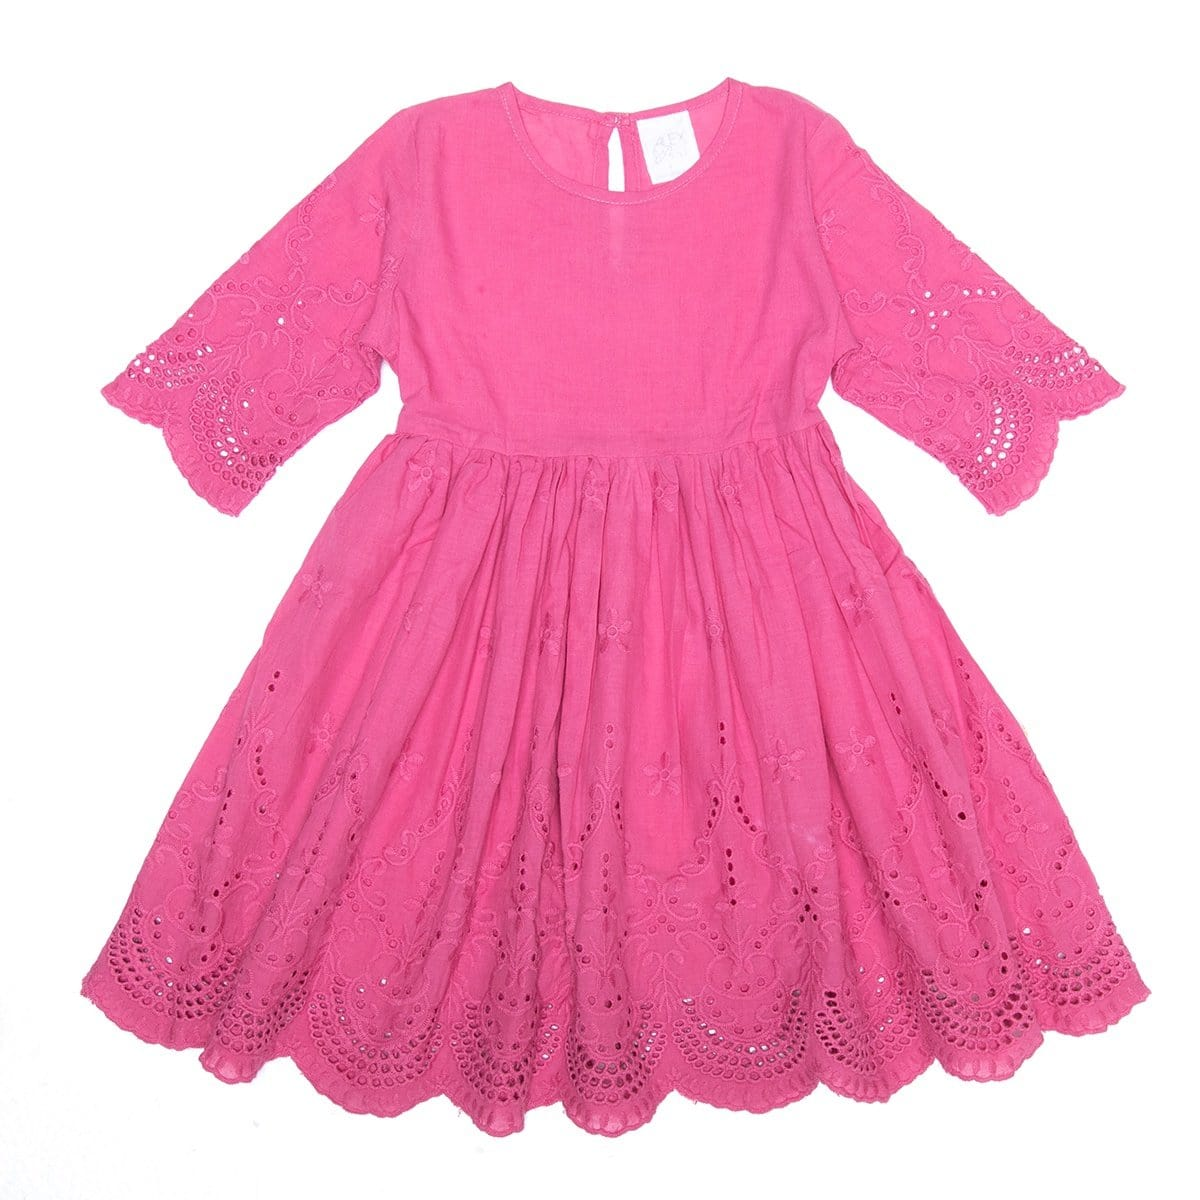 Alex and Ant Angel Dress - Rose